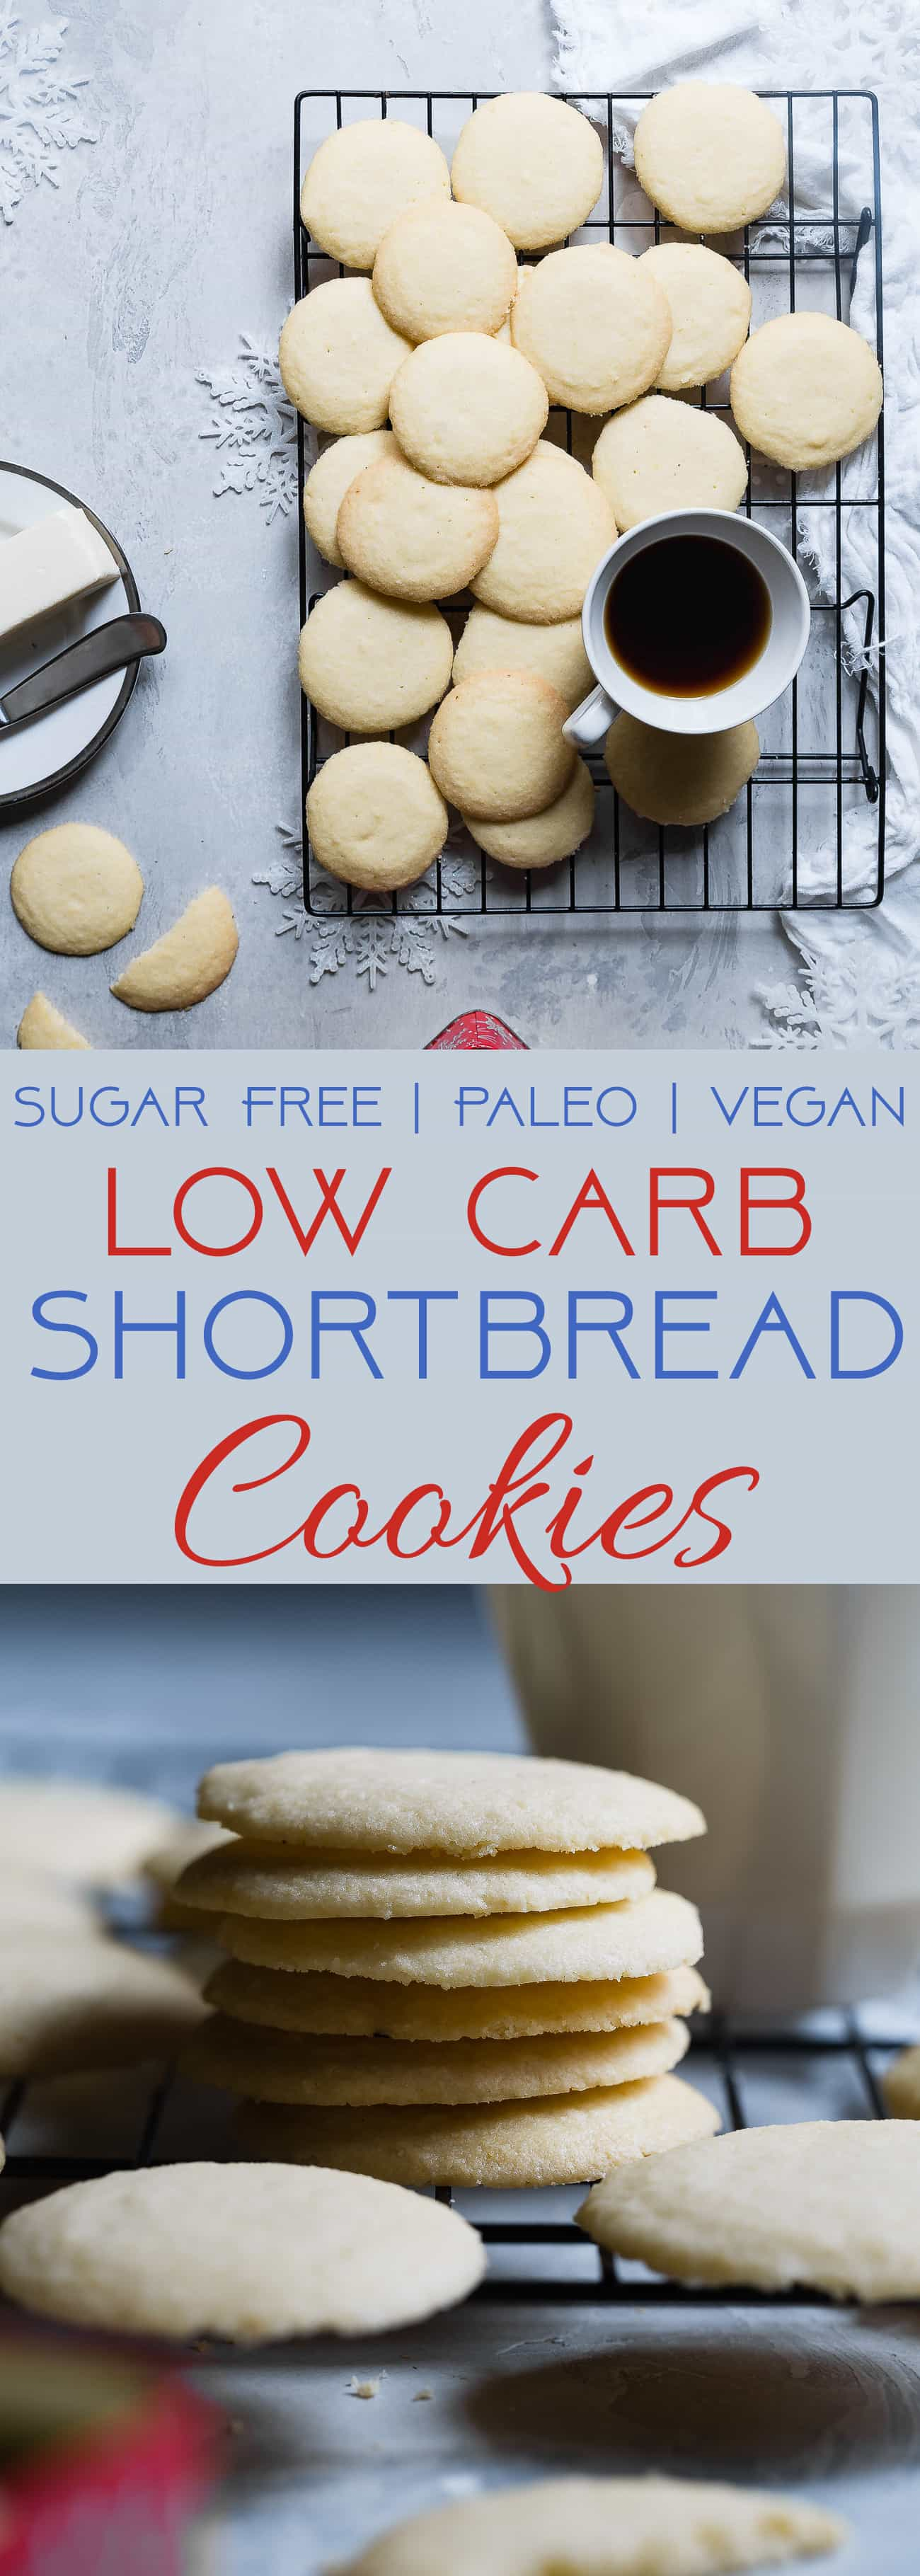 Paleo Whipped Gluten Free Shortbread Cookies - These easy shortbread cookies actually melt in your mouth and are only 60 calories! They're secretly sugar free, healthy and vegan/keto friendly too! | Foodfaithfitness.com | @FoodFaithFit | vegan shortbread cookies. Christmas gluten free shortbread cookies. paleo shortbread cookies. sugar free shortbread cookies. gluten free christmas cookies.